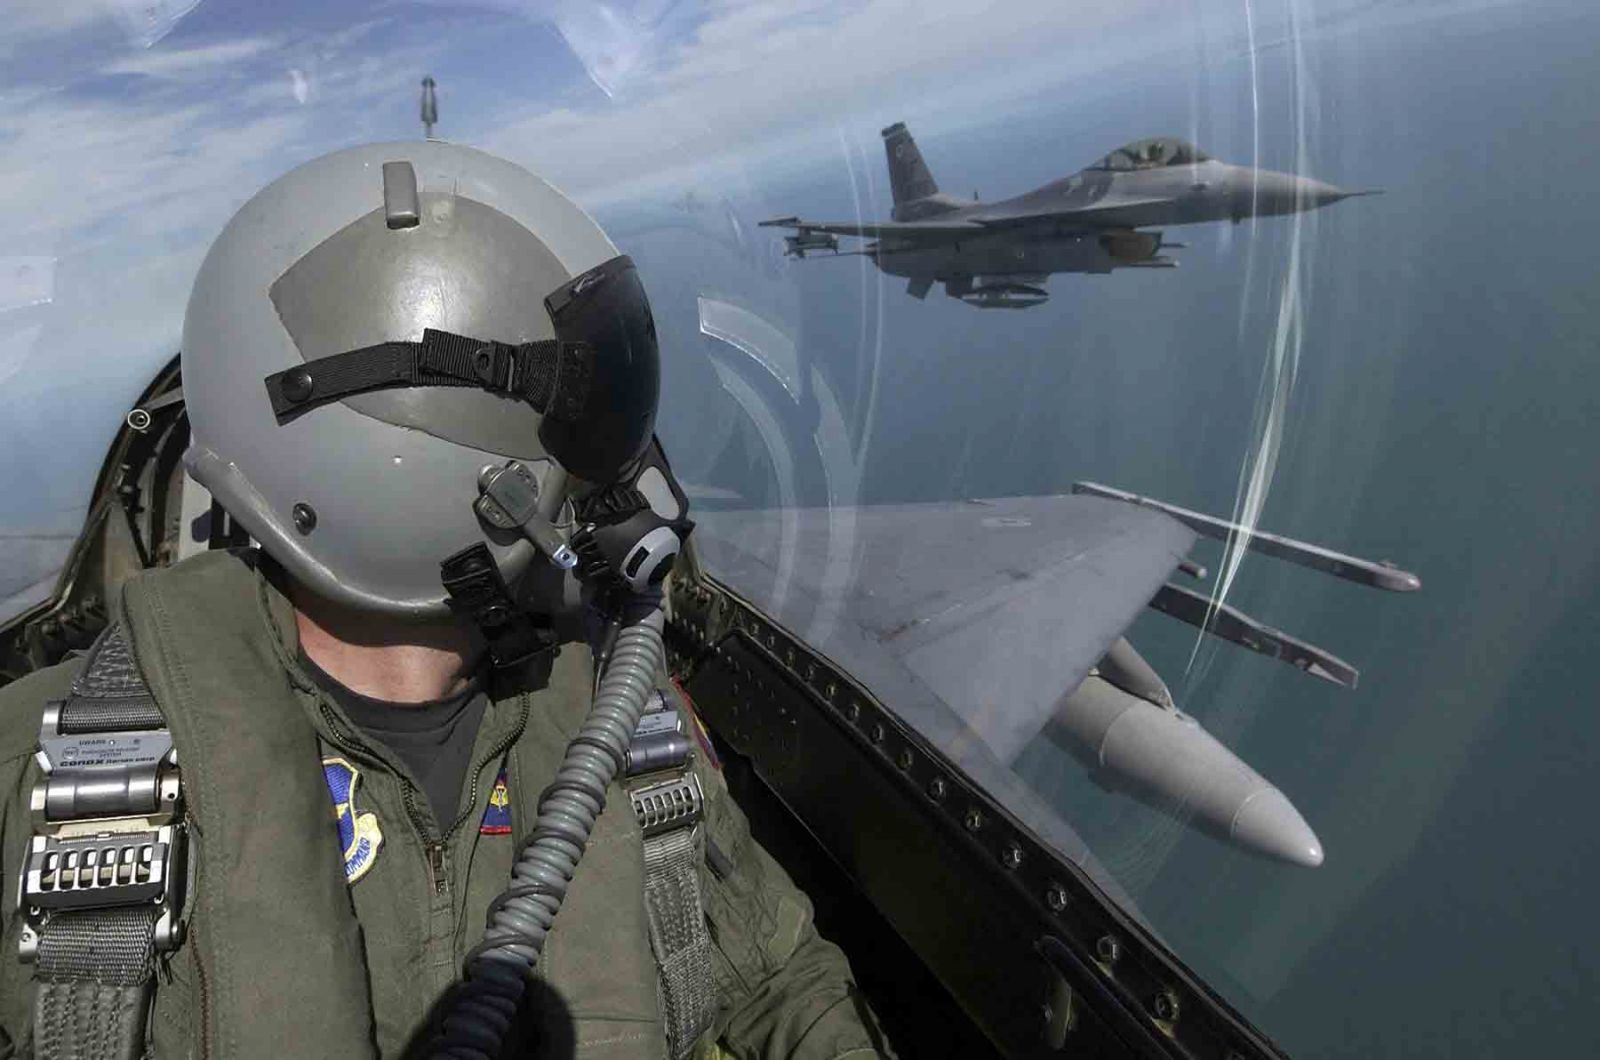 Pilot in an F16 Fighter Jet with the US Army